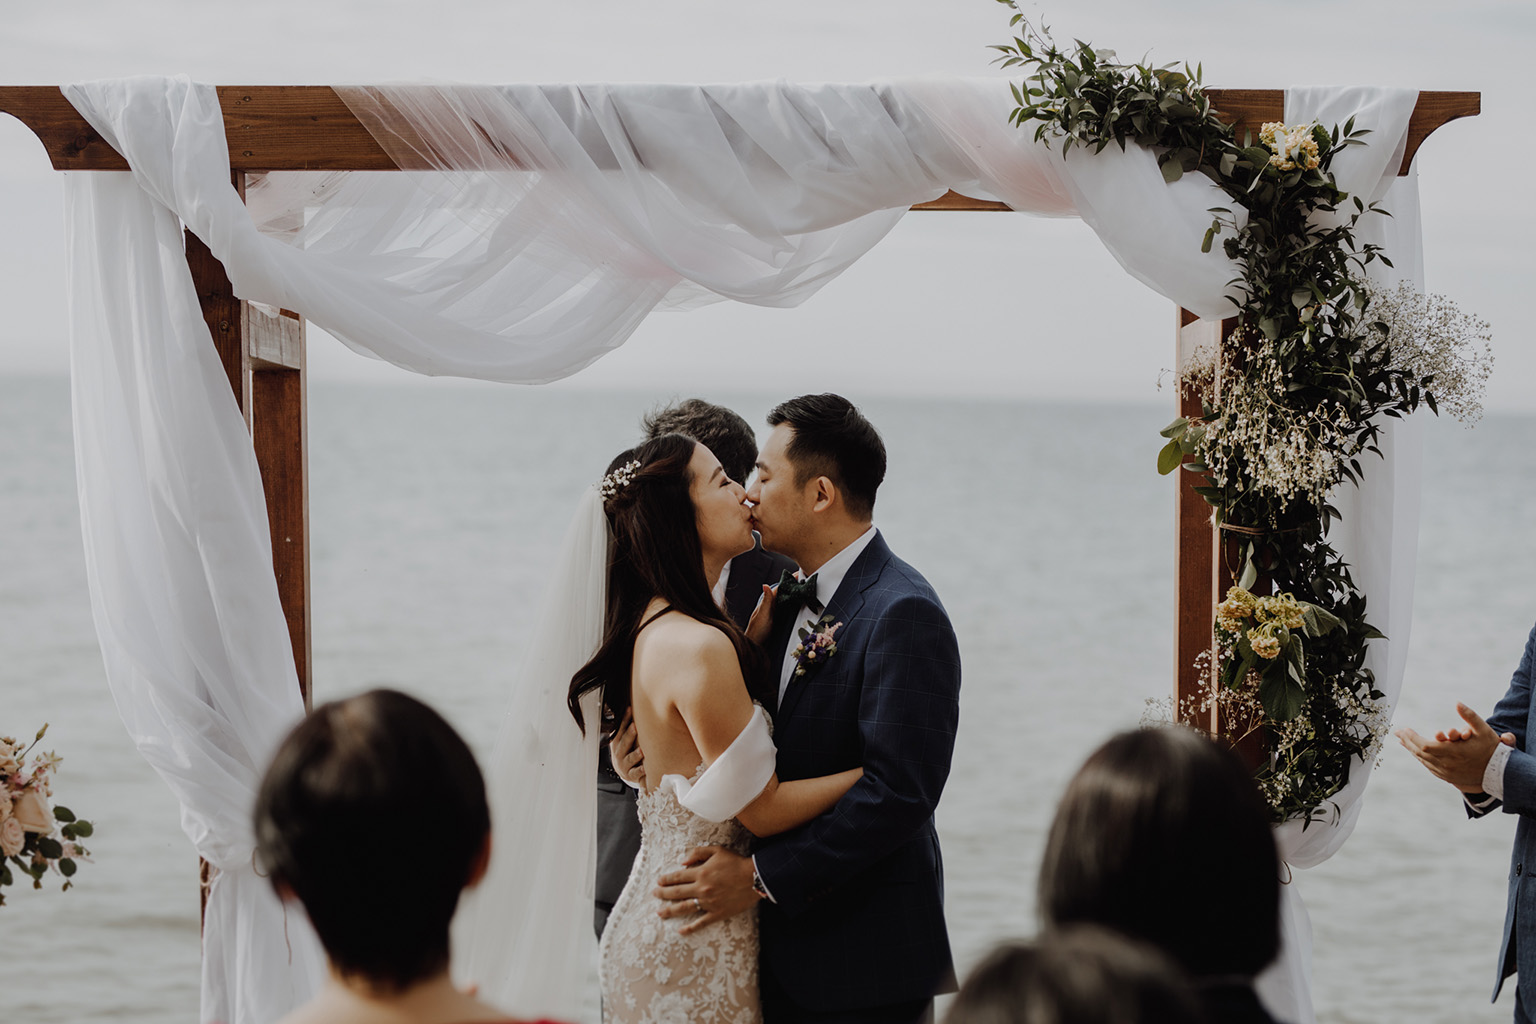 Serenity Cottage Wedding - bride and groom kiss at lakeside alter